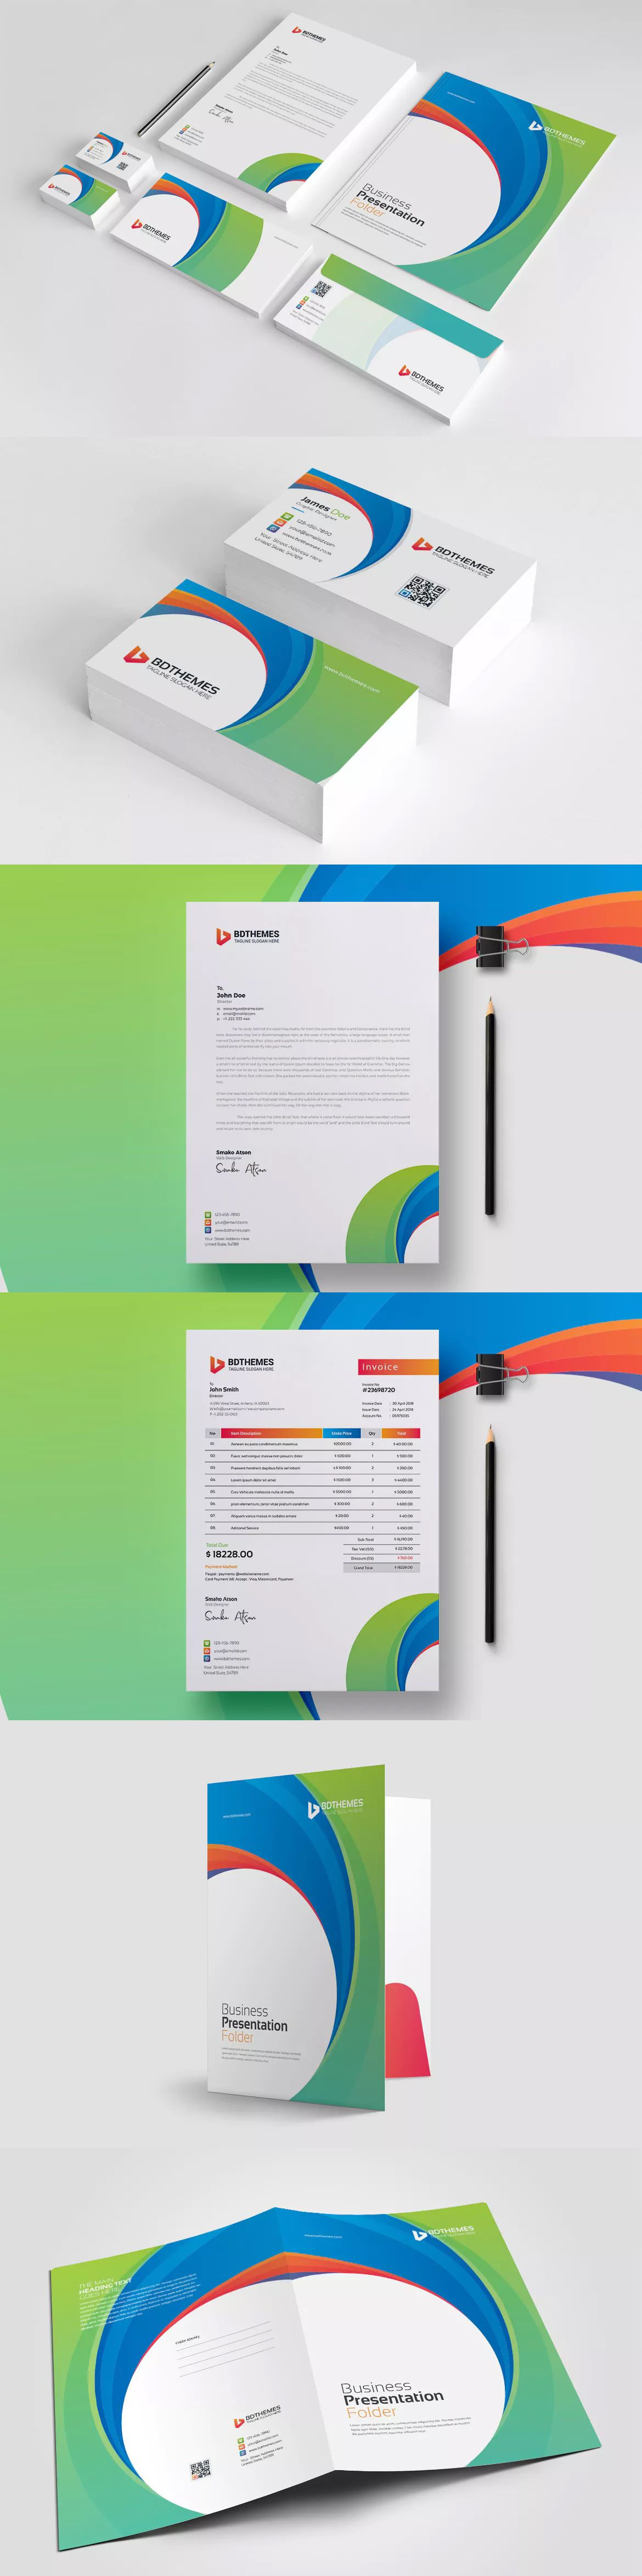 Business stationery template 21 ai eps psd stationery and business stationery template 21 ai eps psd cheaphphosting Gallery